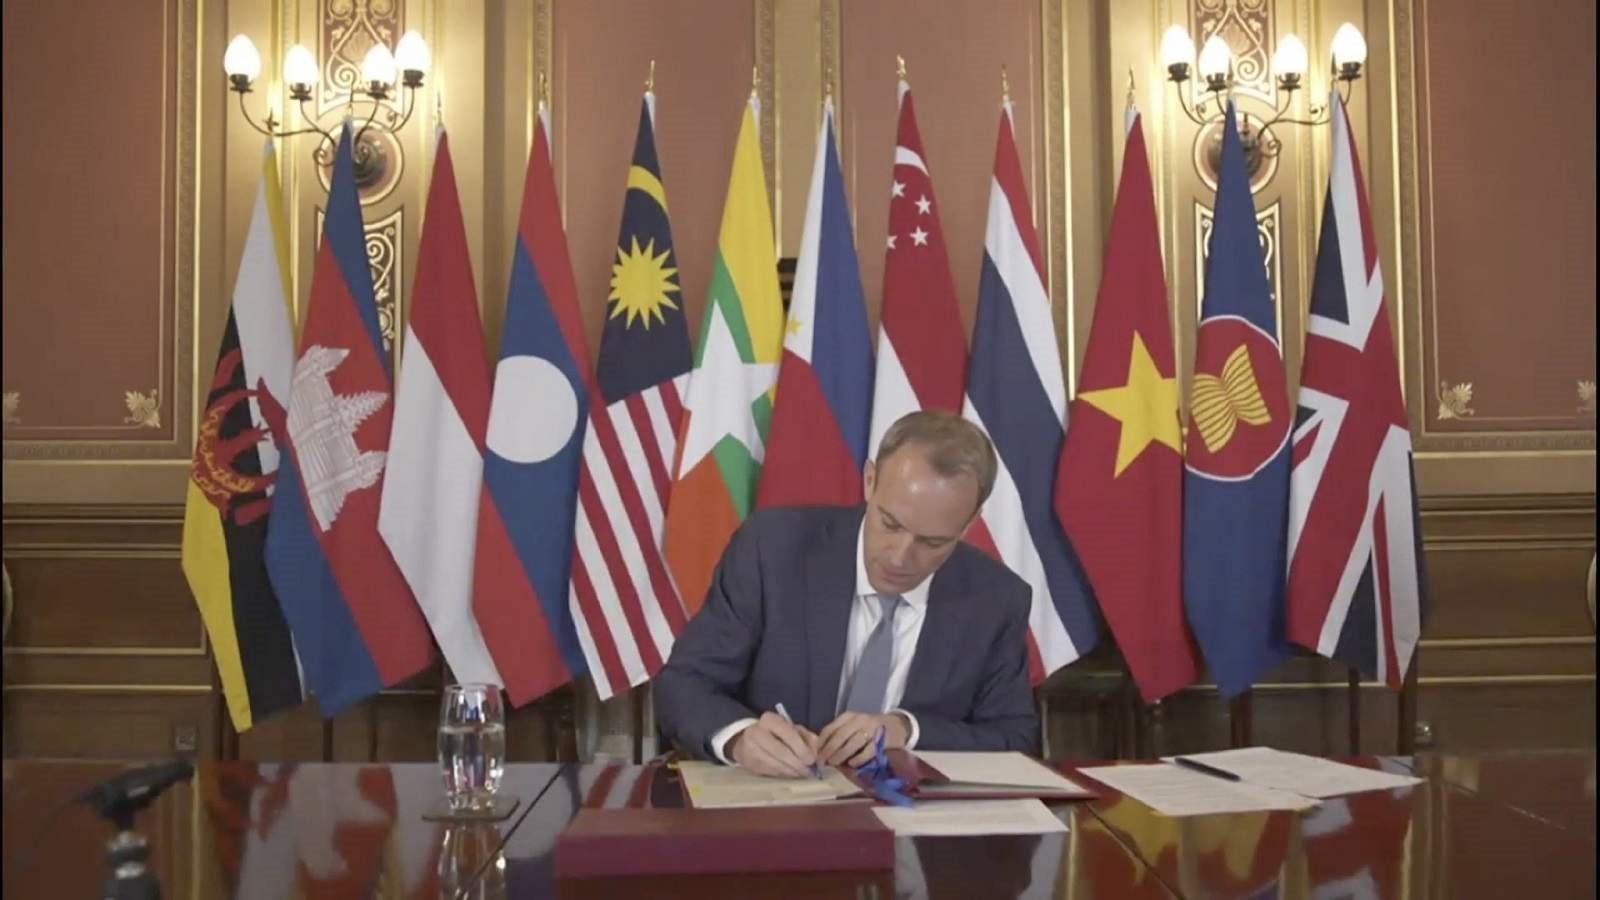 UK Foreign Secretary Dominic Raab co-signs the conferment of the UK to ASEAN Dialogue Partner Status, decided at the 54th ASEAN Foreign Ministers' Meeting (AMM), 2 August 2021 (ASEAN Secretariat/Kusuma Pandu Wijaya/Getty Images)